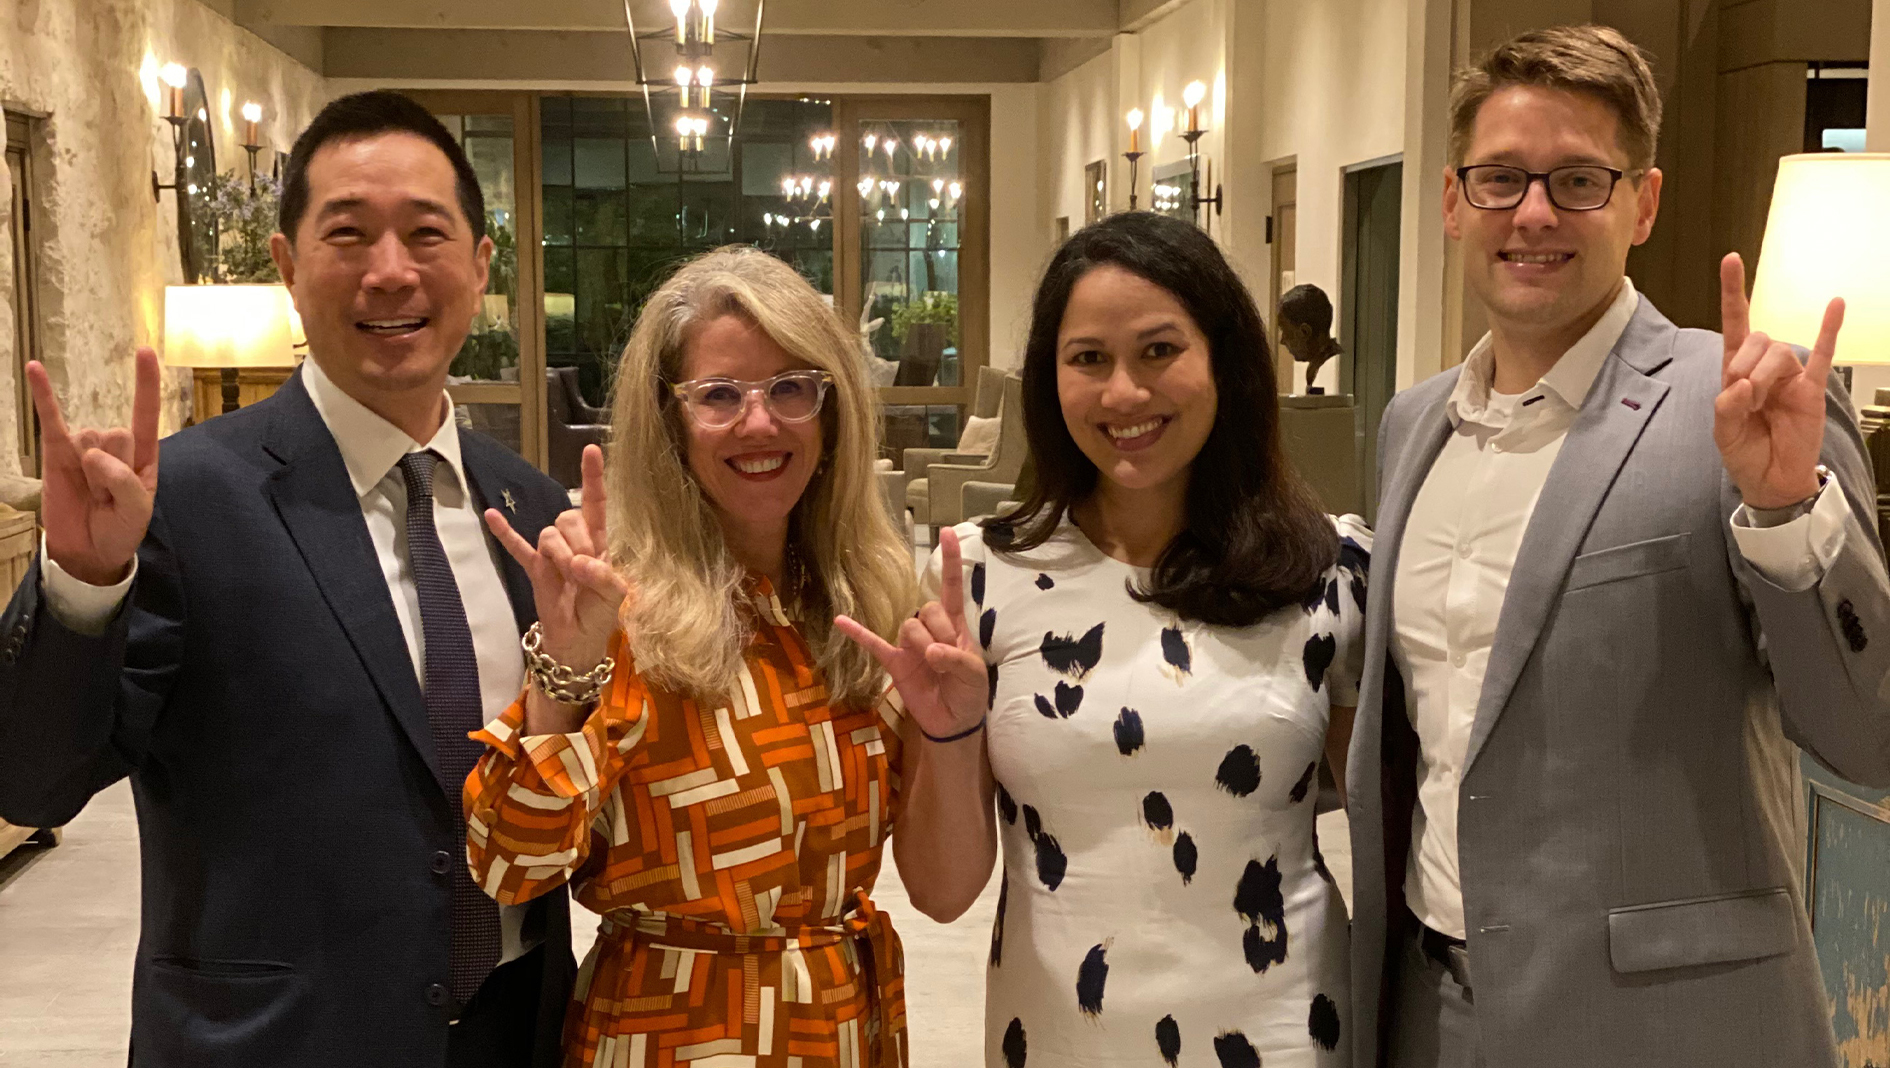 Four members of the Ophthalmology Residency posing in a group photo with the Hook 'em horns hand sign.